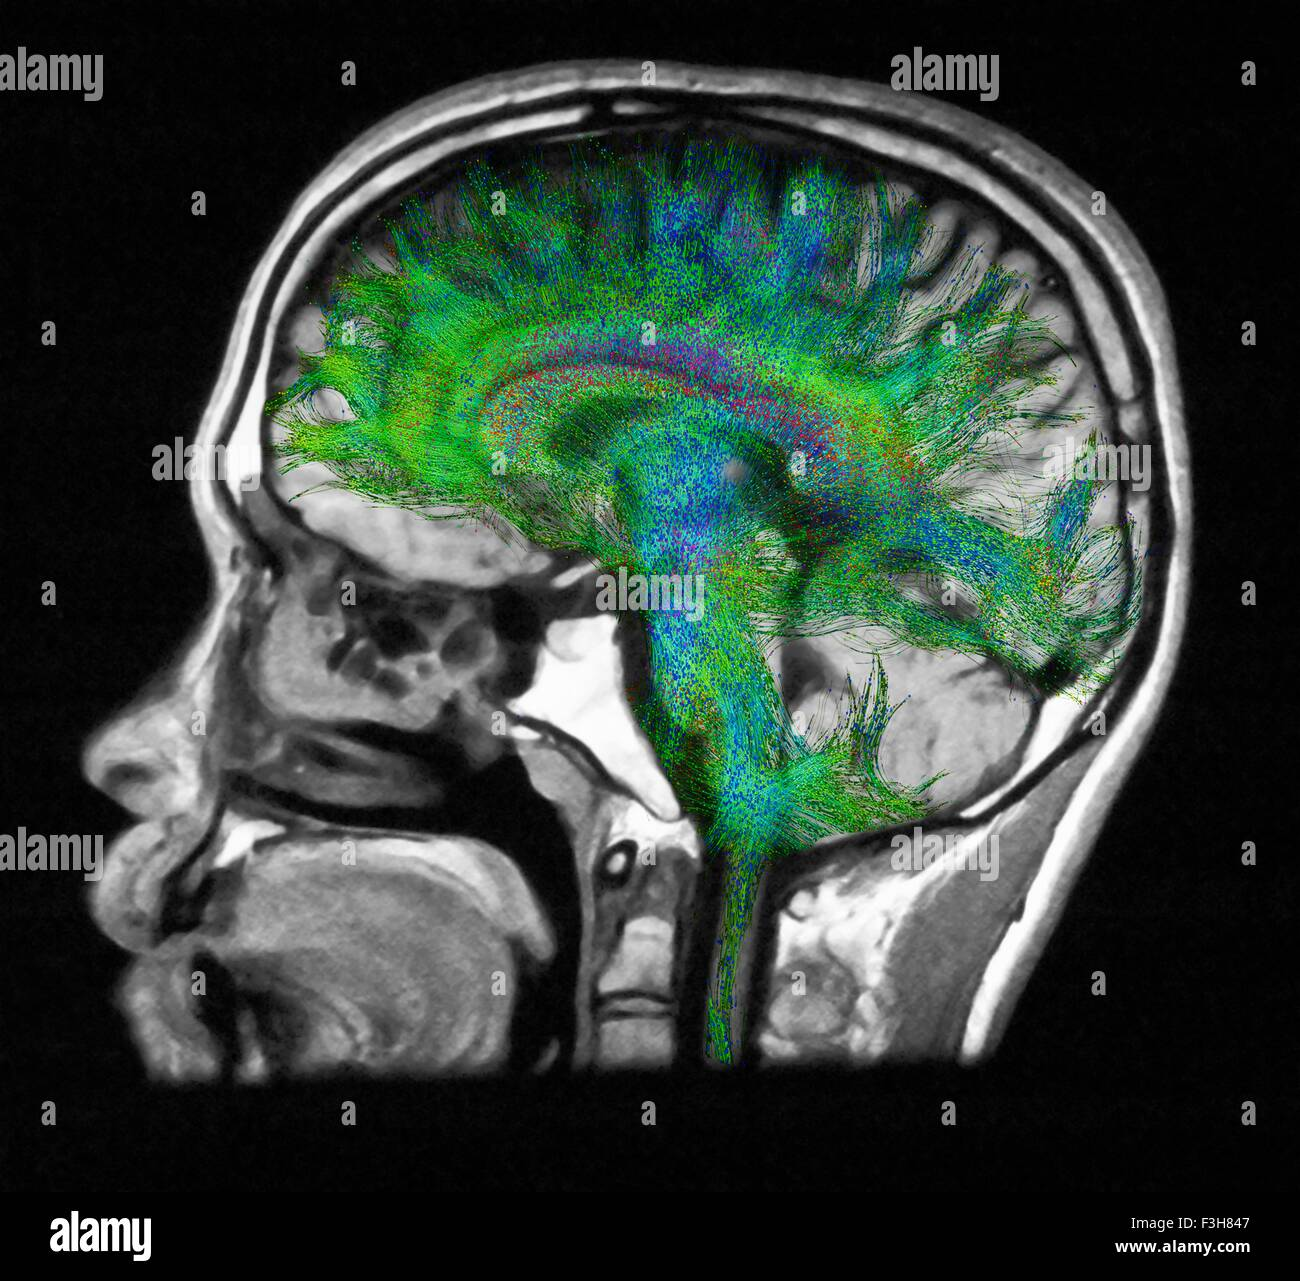 Diffusion MRI, also referred to as diffusion tensor imaging or DTI, of the human brain - Stock Image